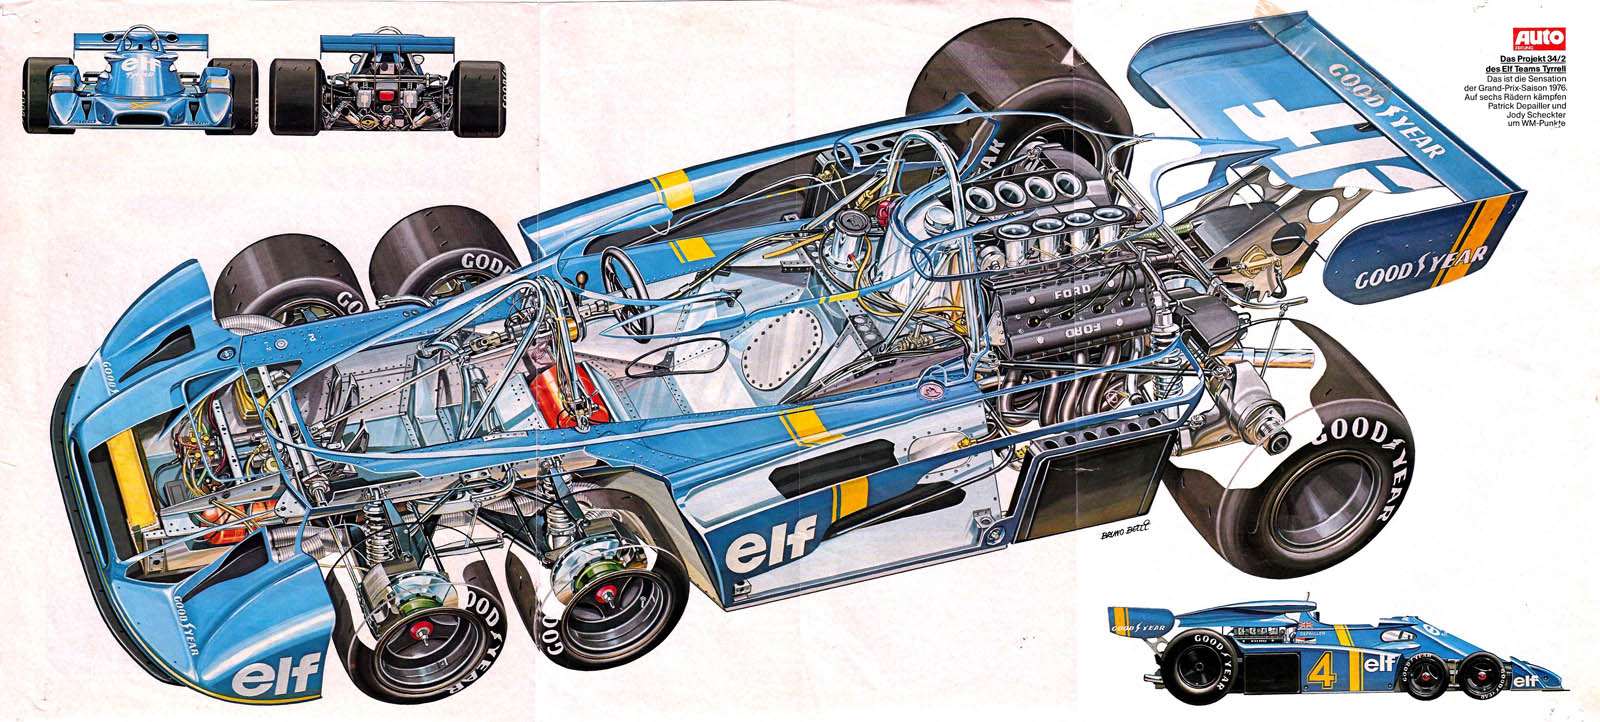 Chassis design of f1 car - Lotus F1 Formula Cars Side View Illustrations Part 1 Formula 1 Pinterest Lotus F1 Lotus And Cars